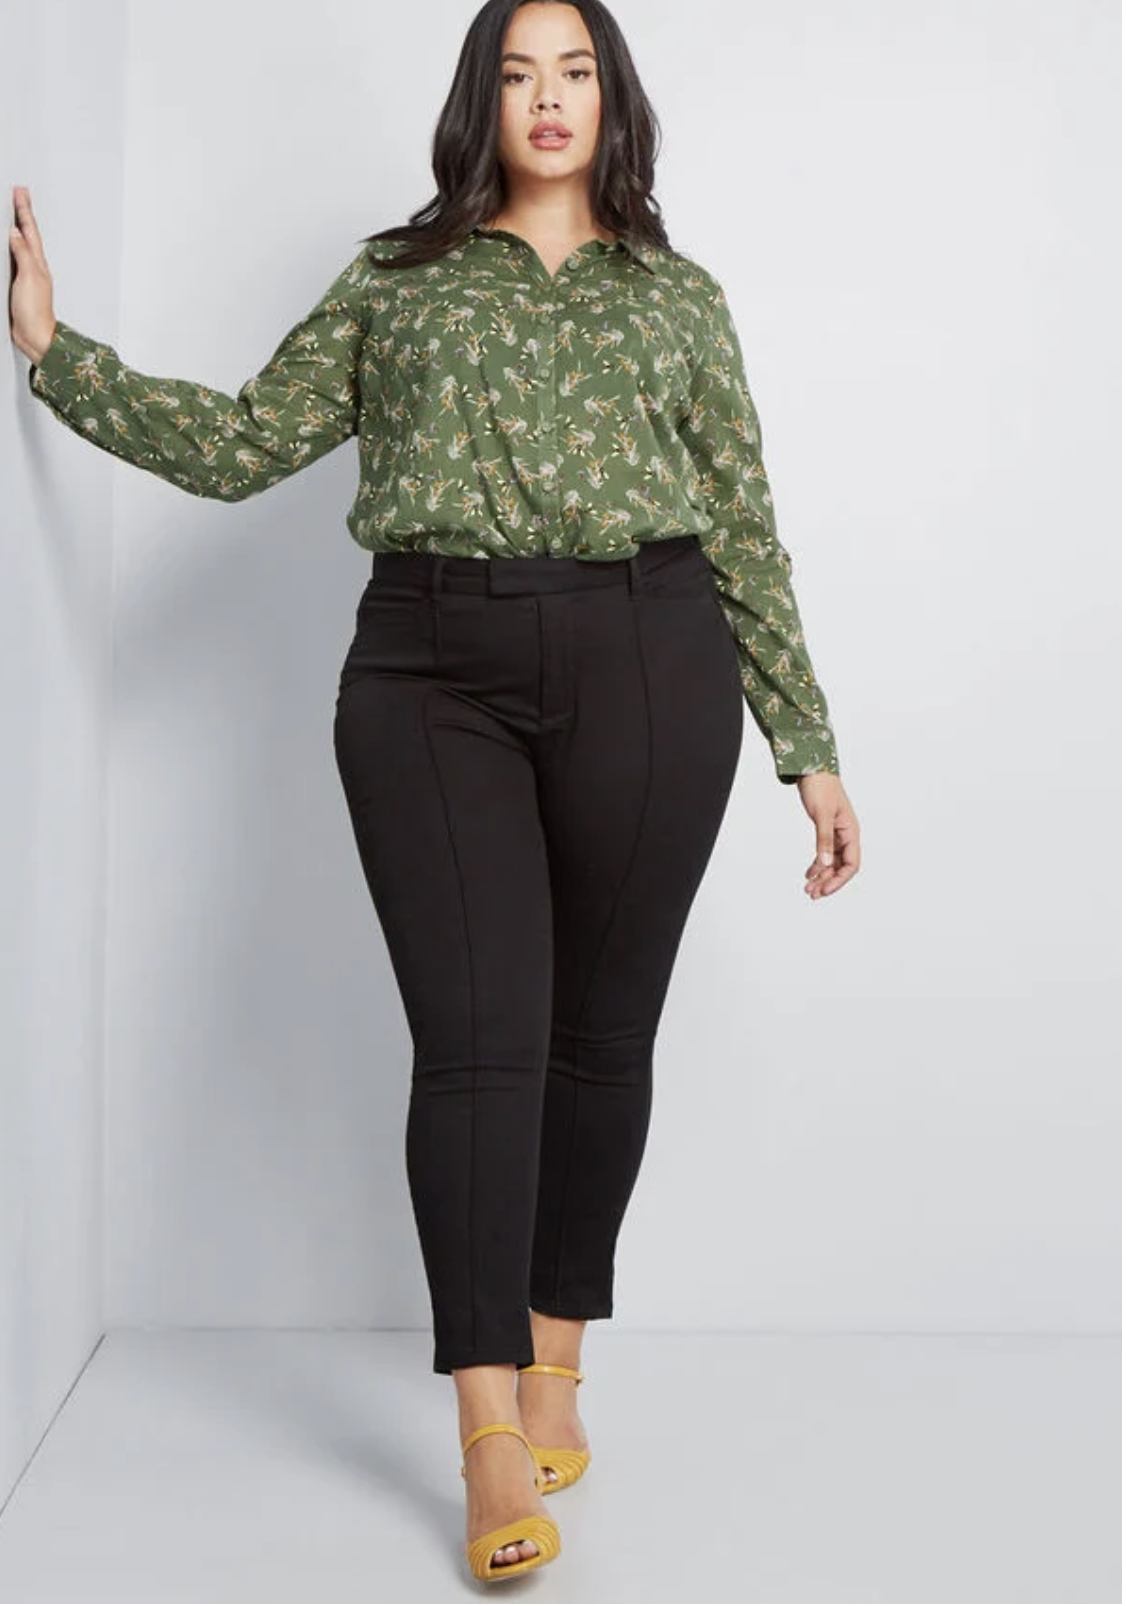 Model in a pair of black highwaisted ankle pants with a seam down the middle of each leg